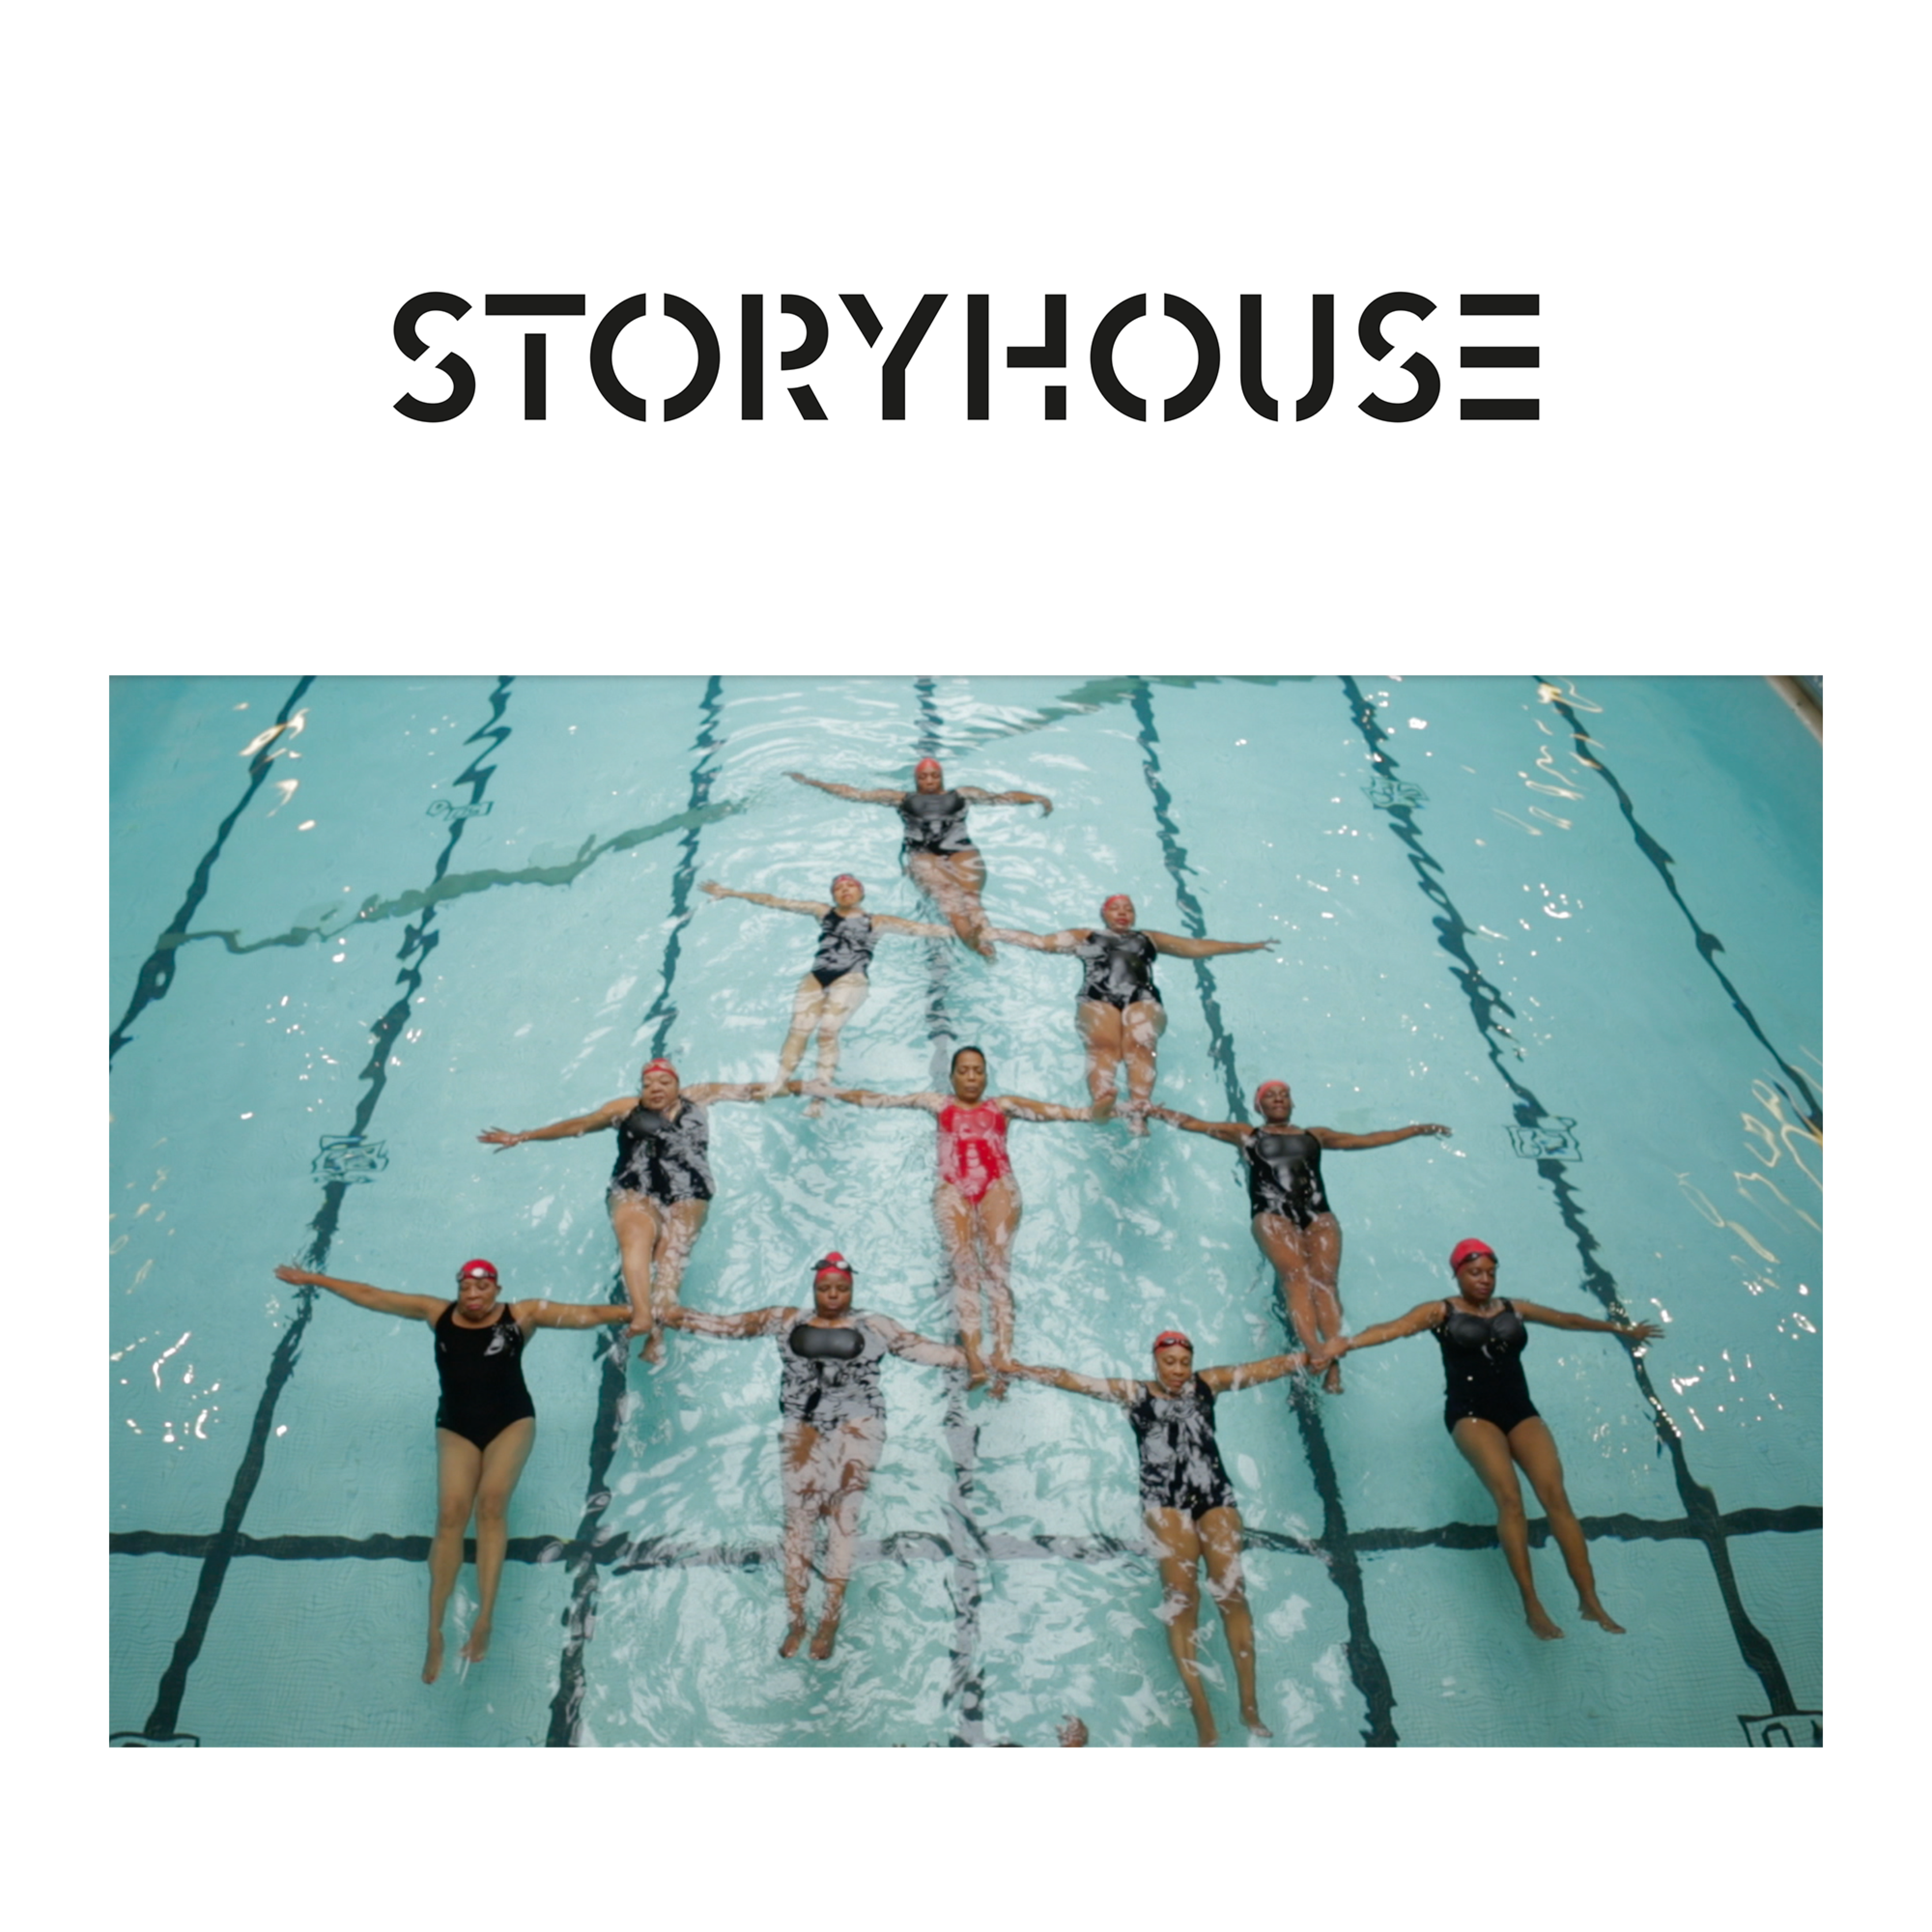 Women Over Fifty Film Festival at Storyhouse